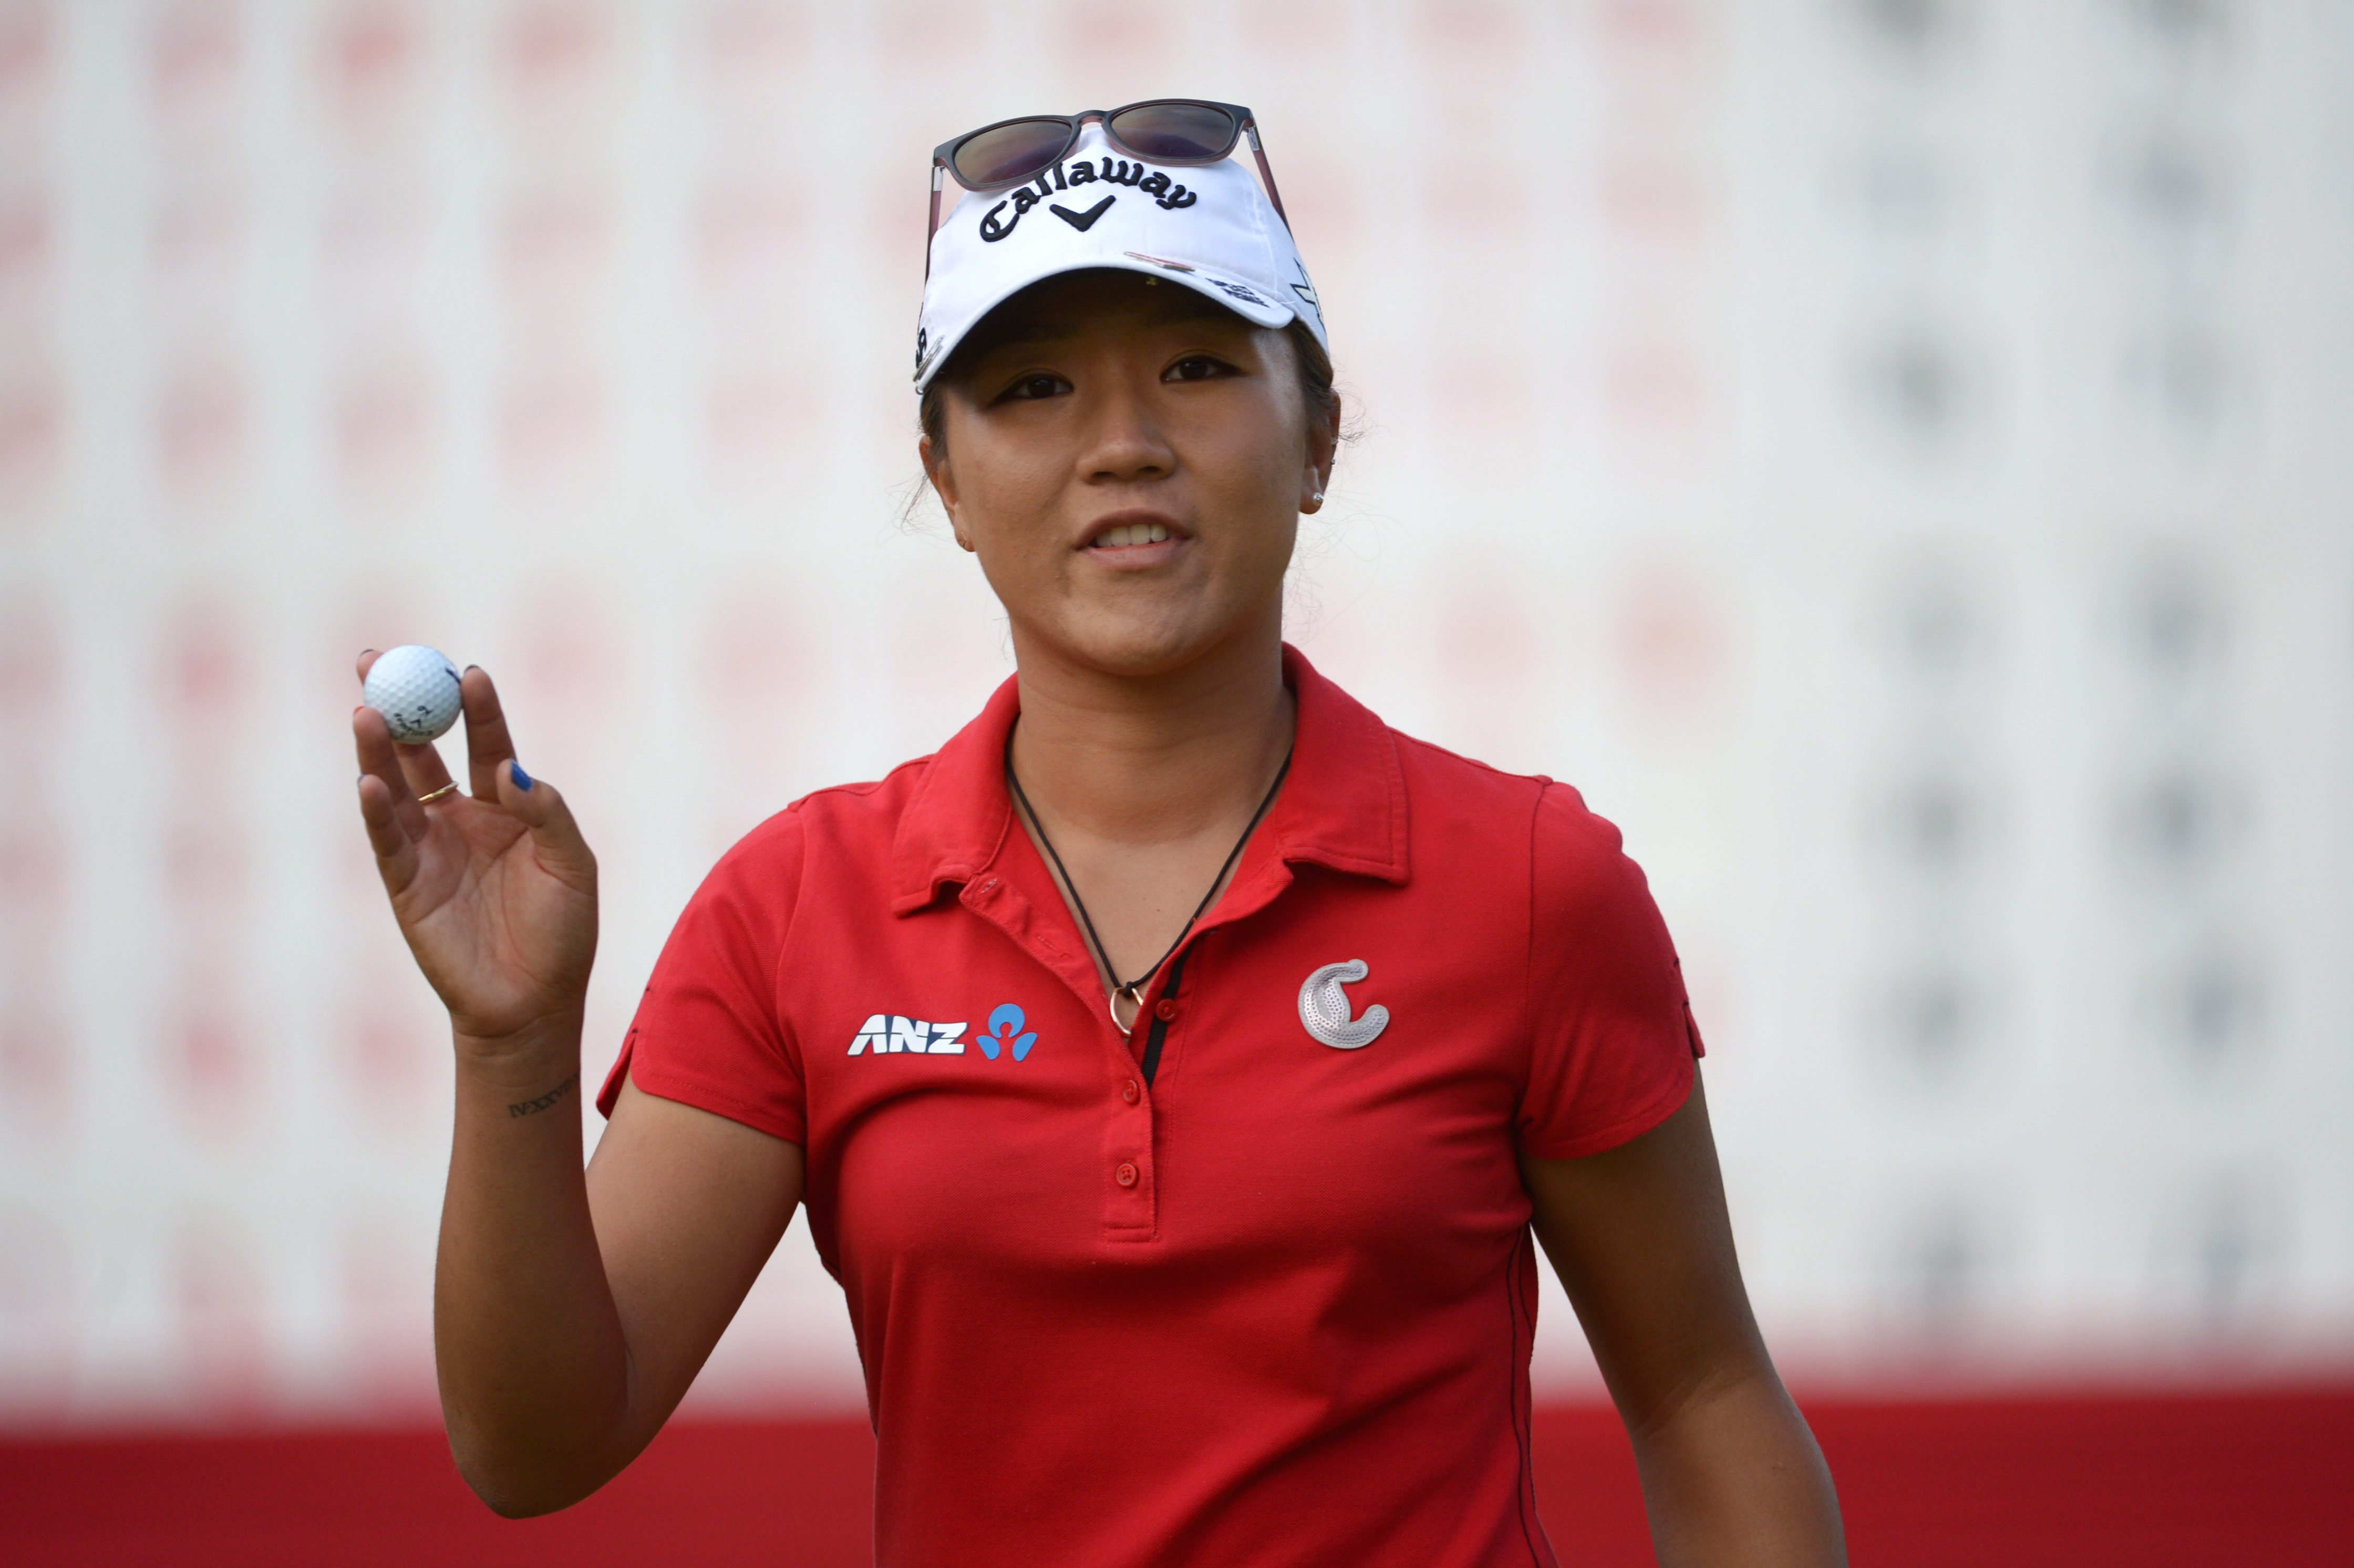 Lydia Ko, of New Zealand, waves to the crowd on the 18th green during the final round of the Canadian Pacific Women's Open golf tournament at Vancouver Golf Club in Coquitlam, British Columbia, on Sunday, Aug. 23, 2015. (Jonathan Hayward/The Canadian Pres